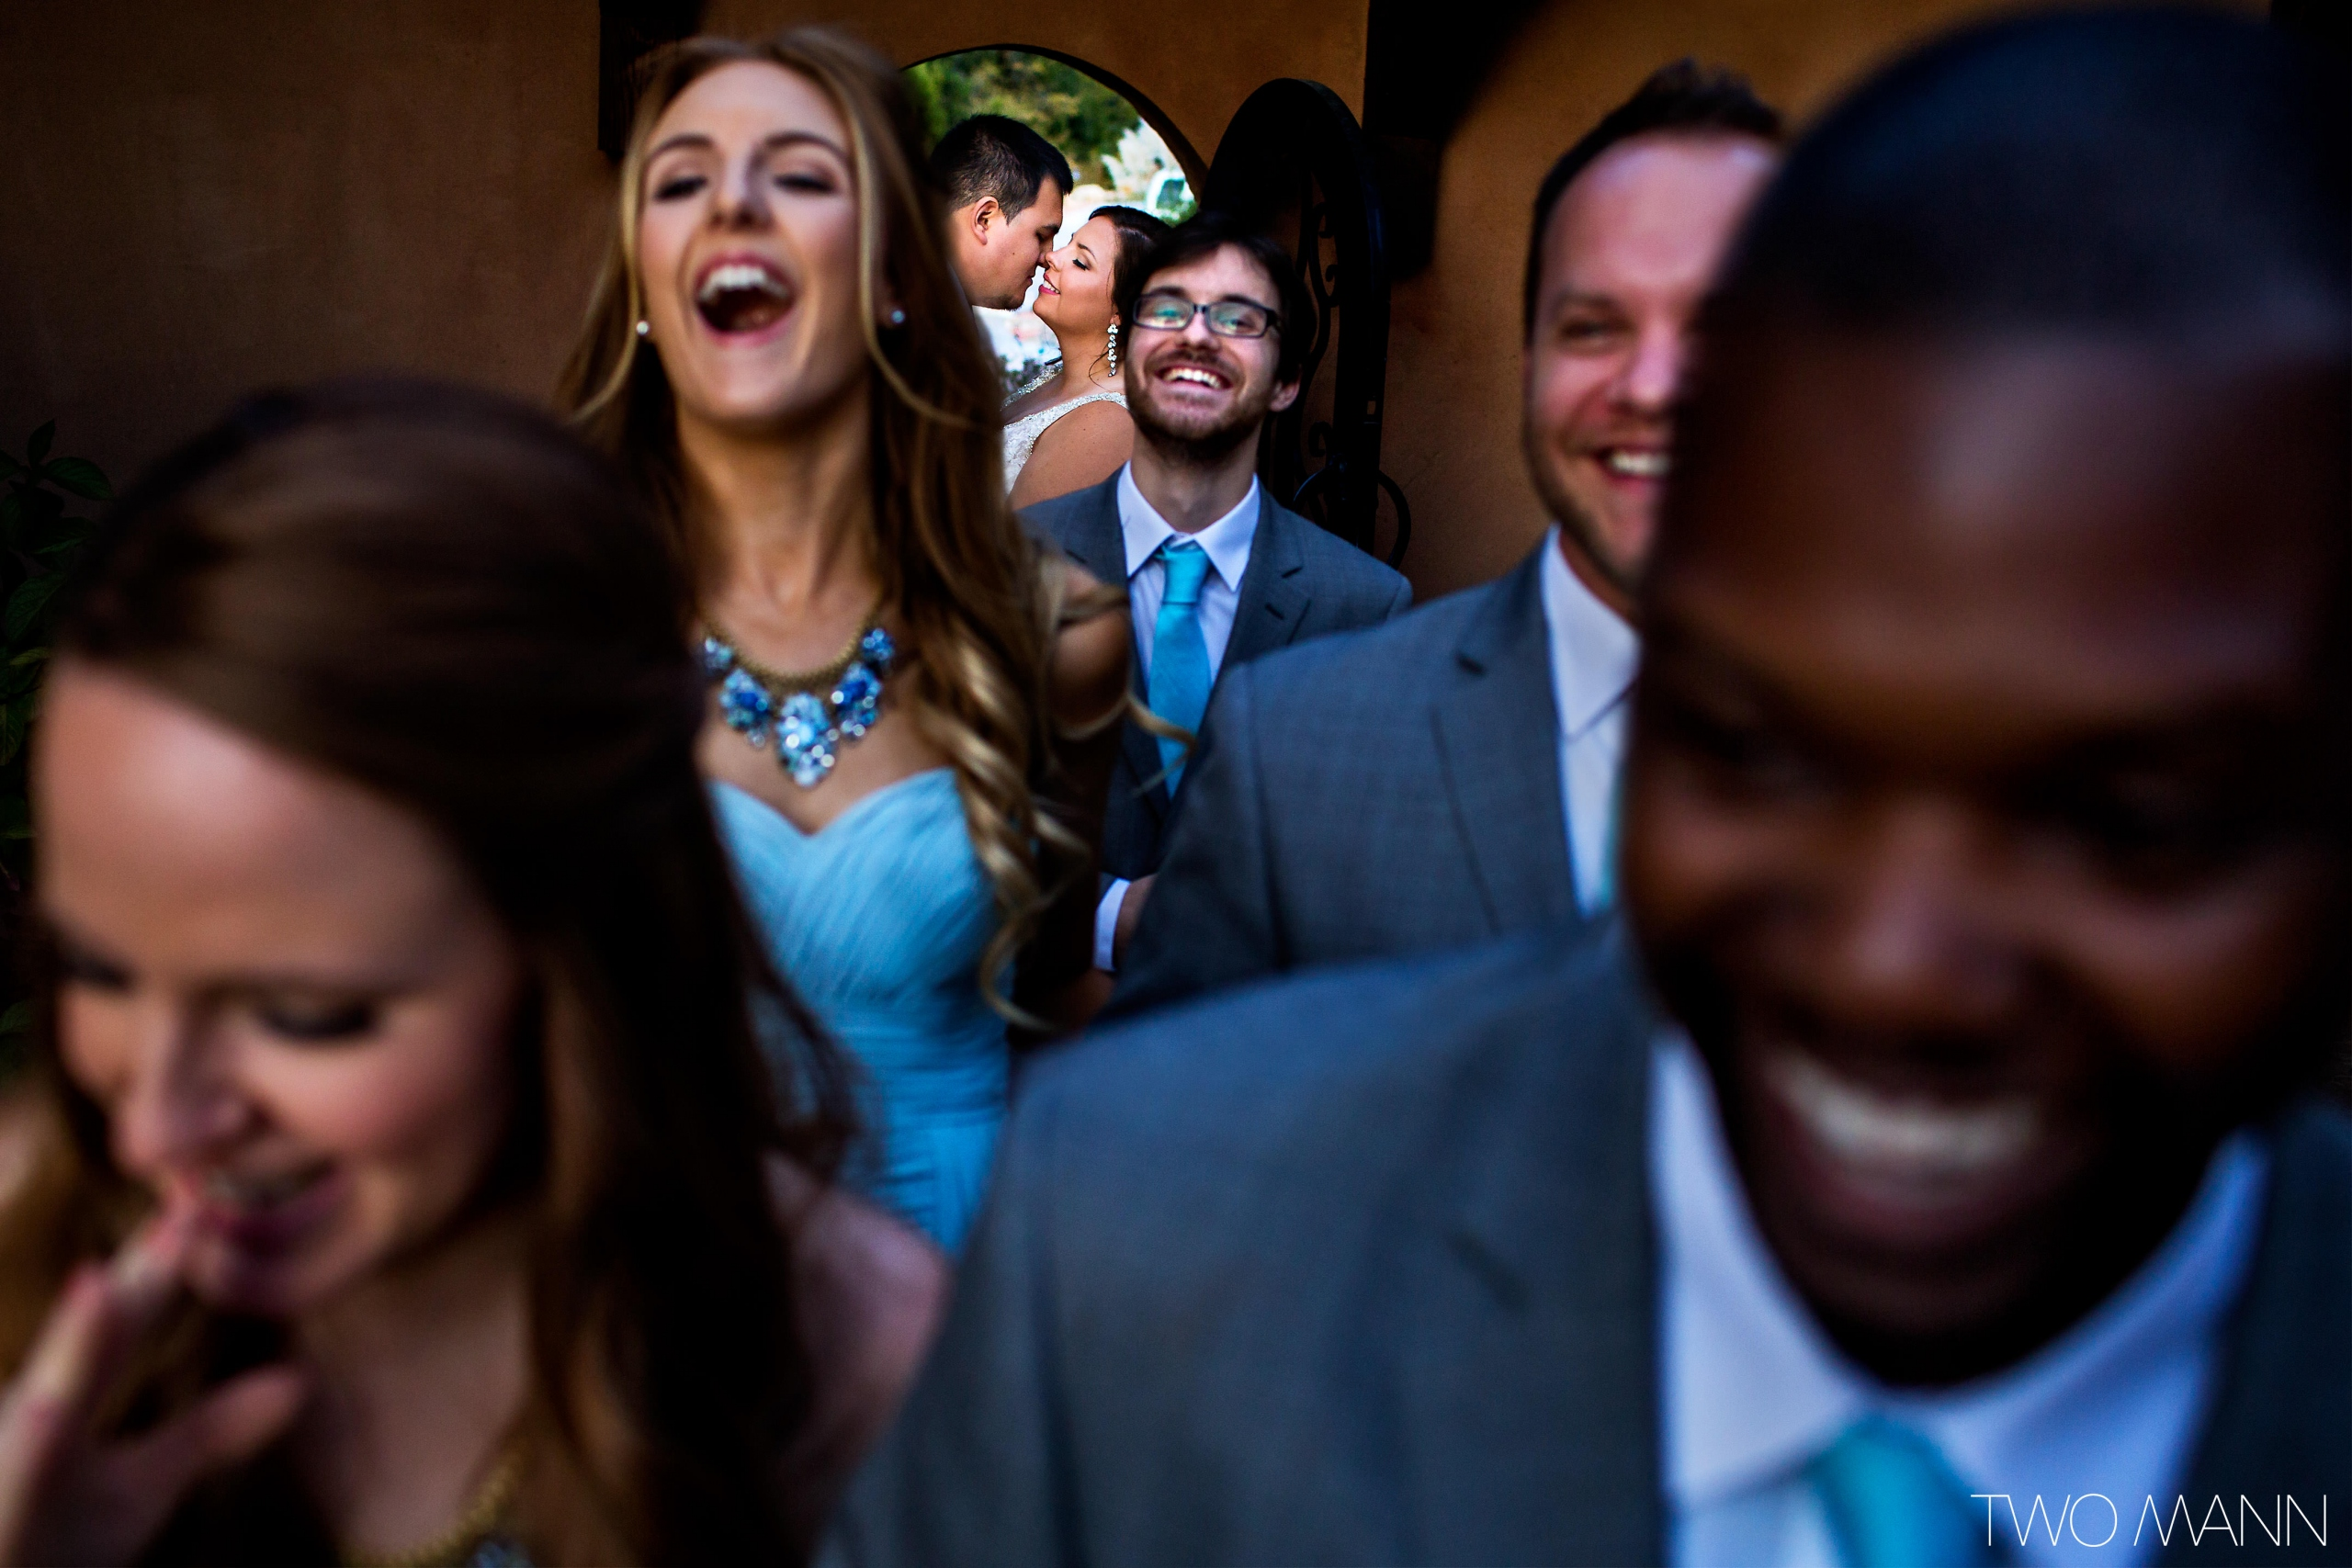 smiling faces of newlyweds and their friends